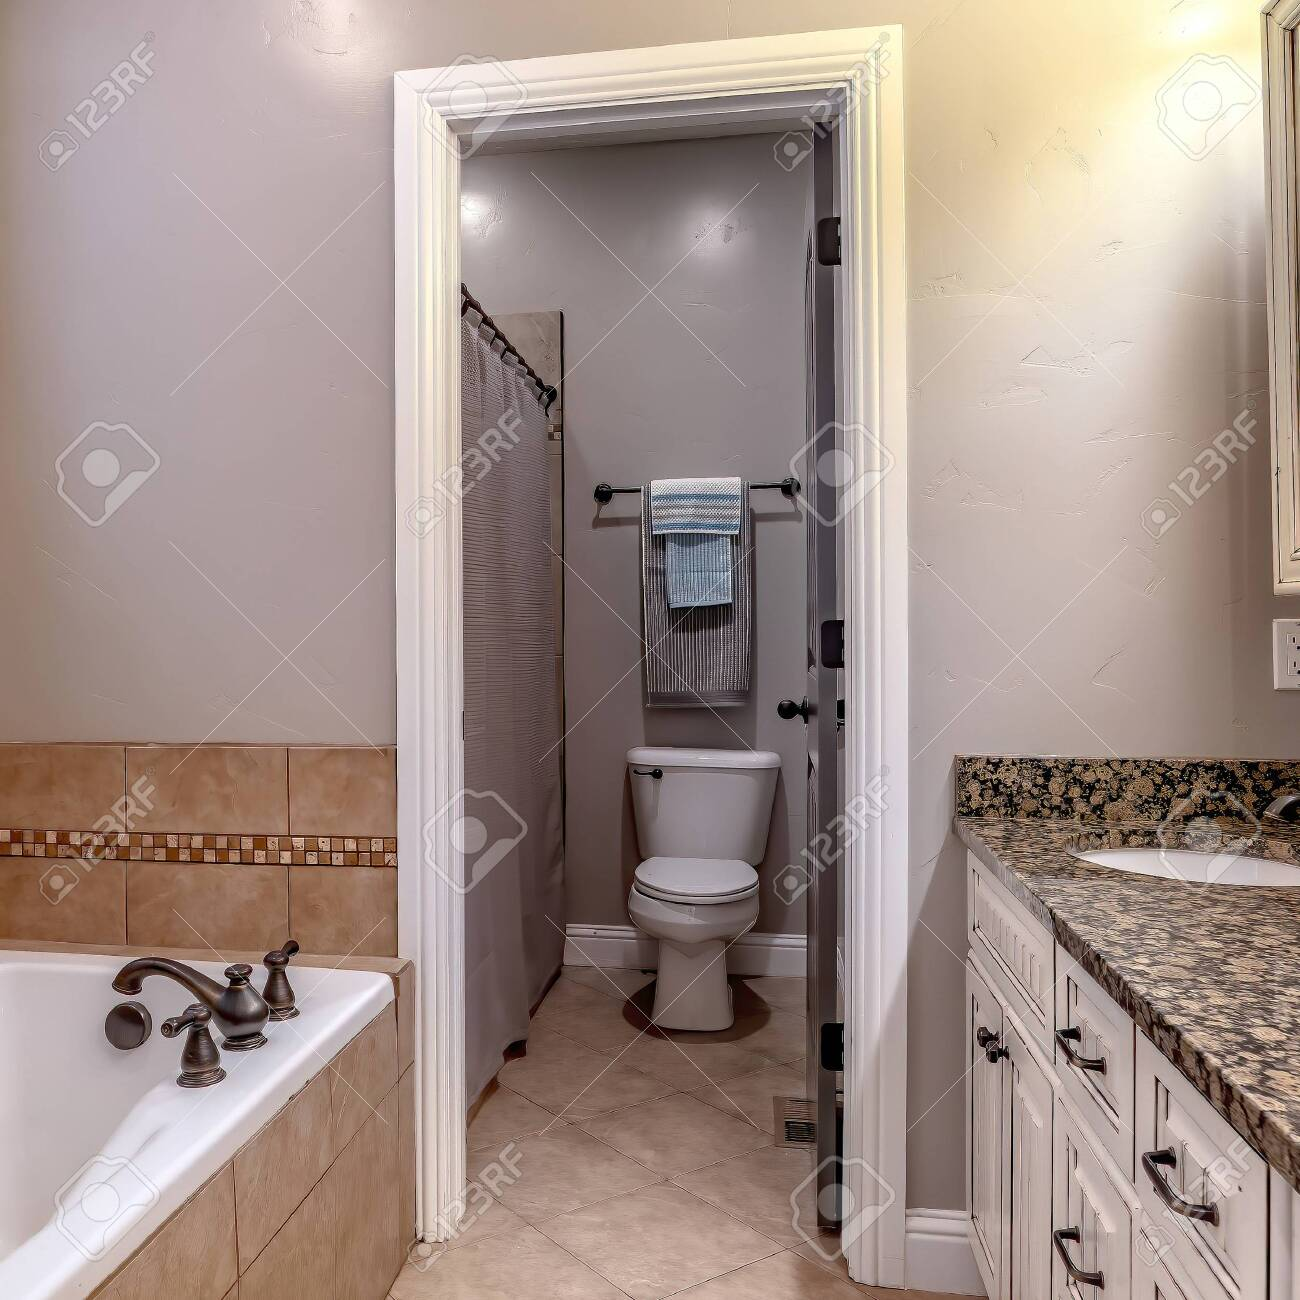 Square Crop Bathroom Interior With Bathtub Double Sink Vanity Stock Photo Picture And Royalty Free Image Image 149187693